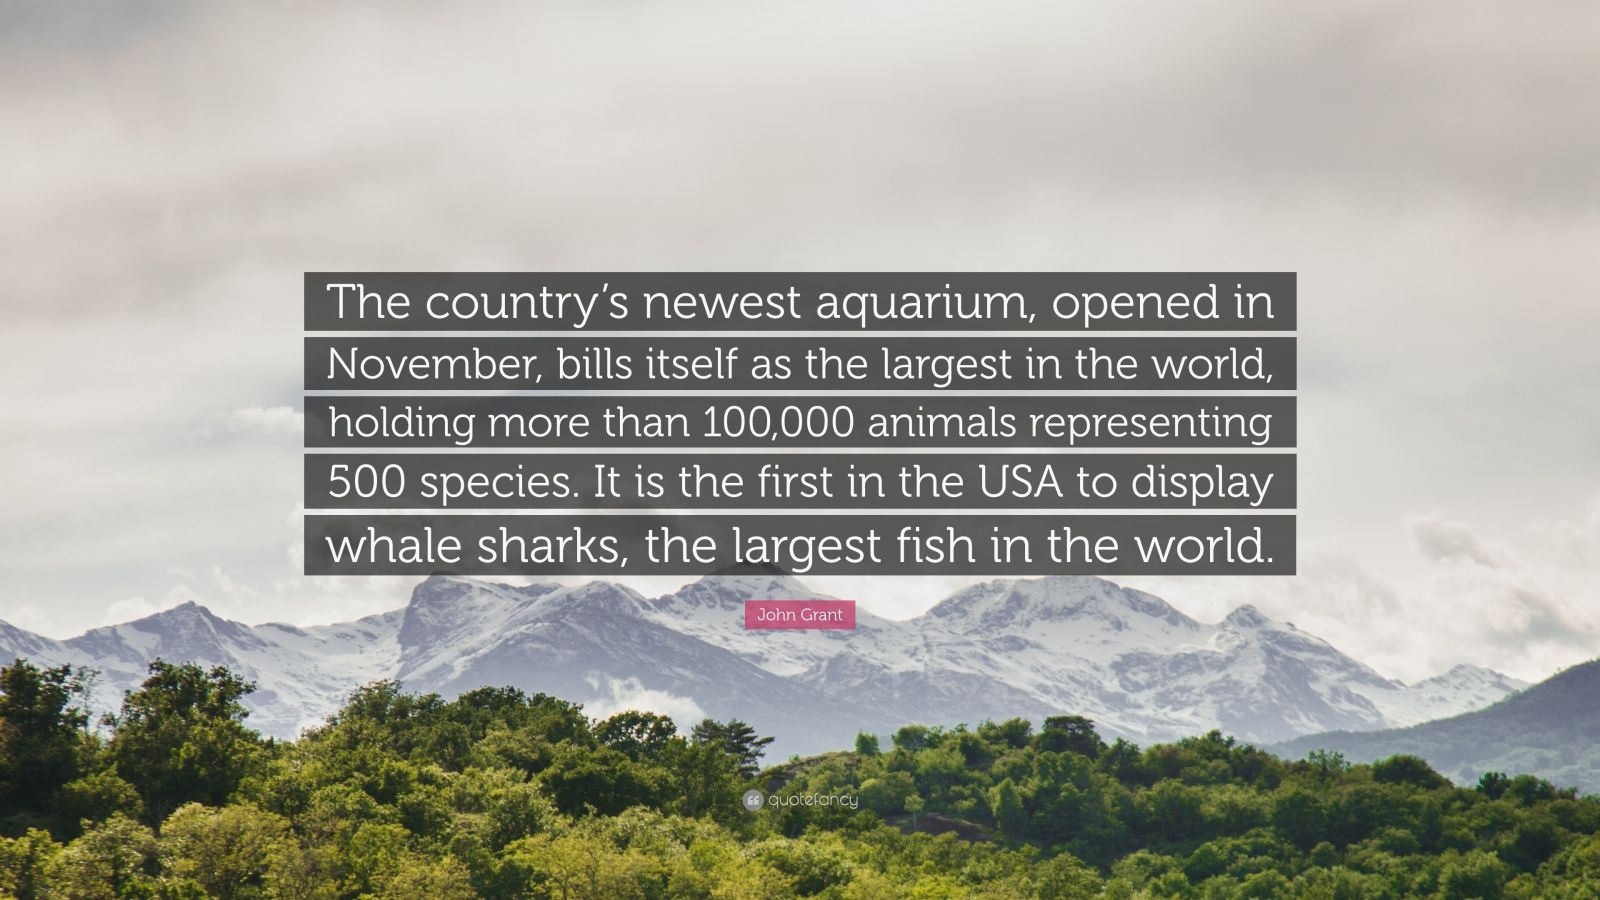 """John Grant Quote: """"The country's newest aquarium, opened in November, bills itself as the largest in the world, holding more than 100,000 animals representing 500 species. It is the first in the USA to display whale sharks, the largest fish in the world."""""""